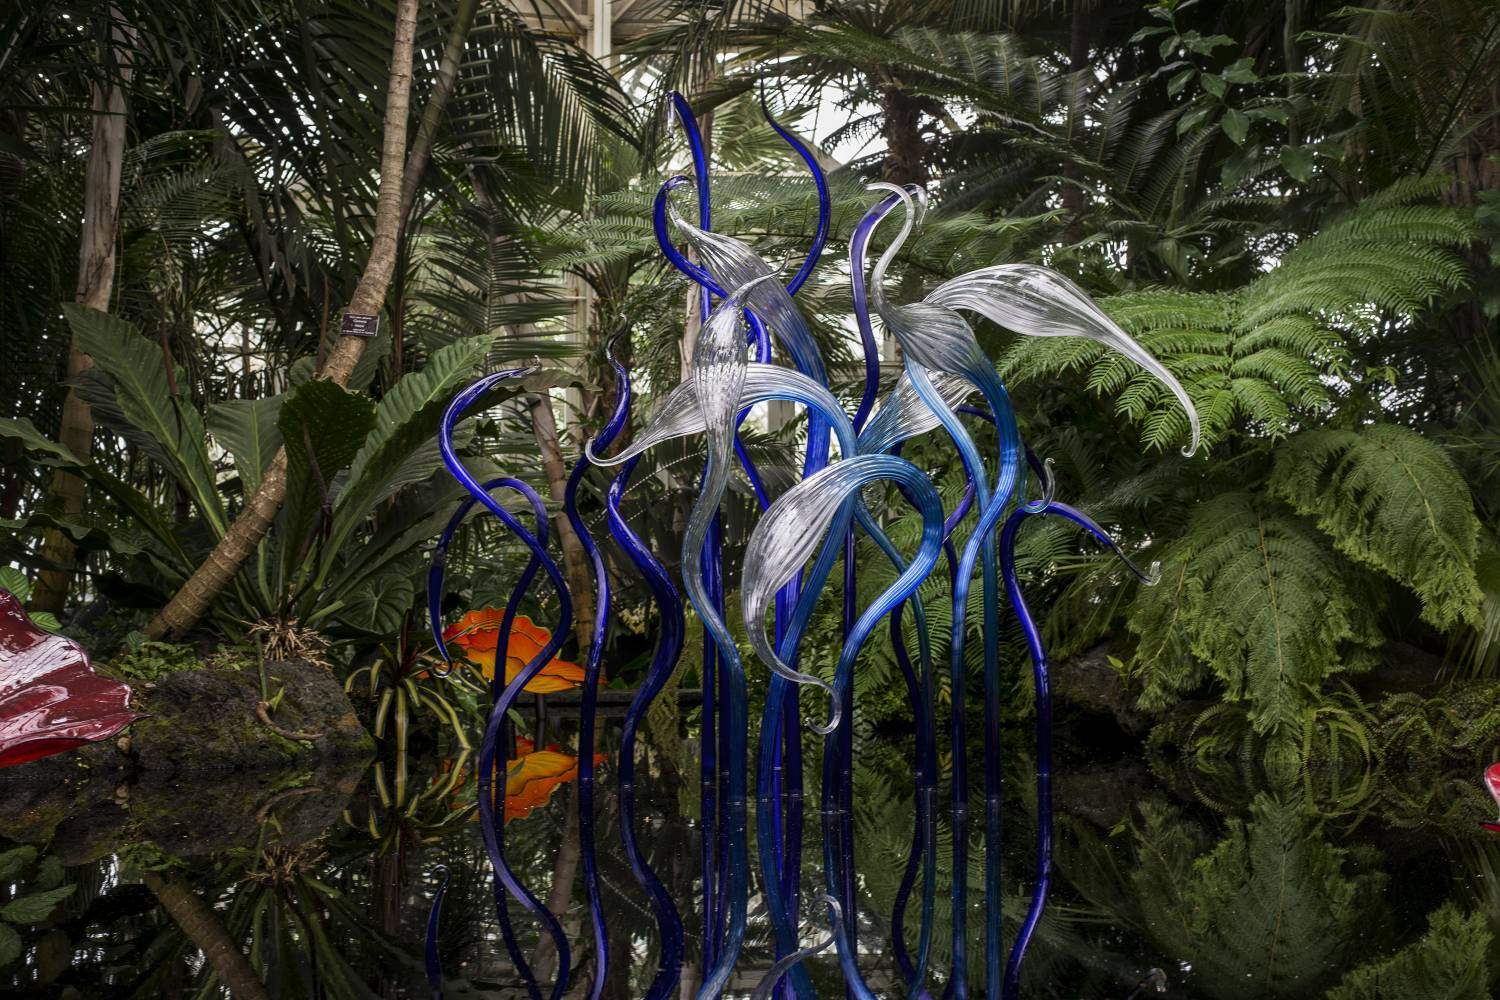 dale chihuly at the new york botanical garden the official guide